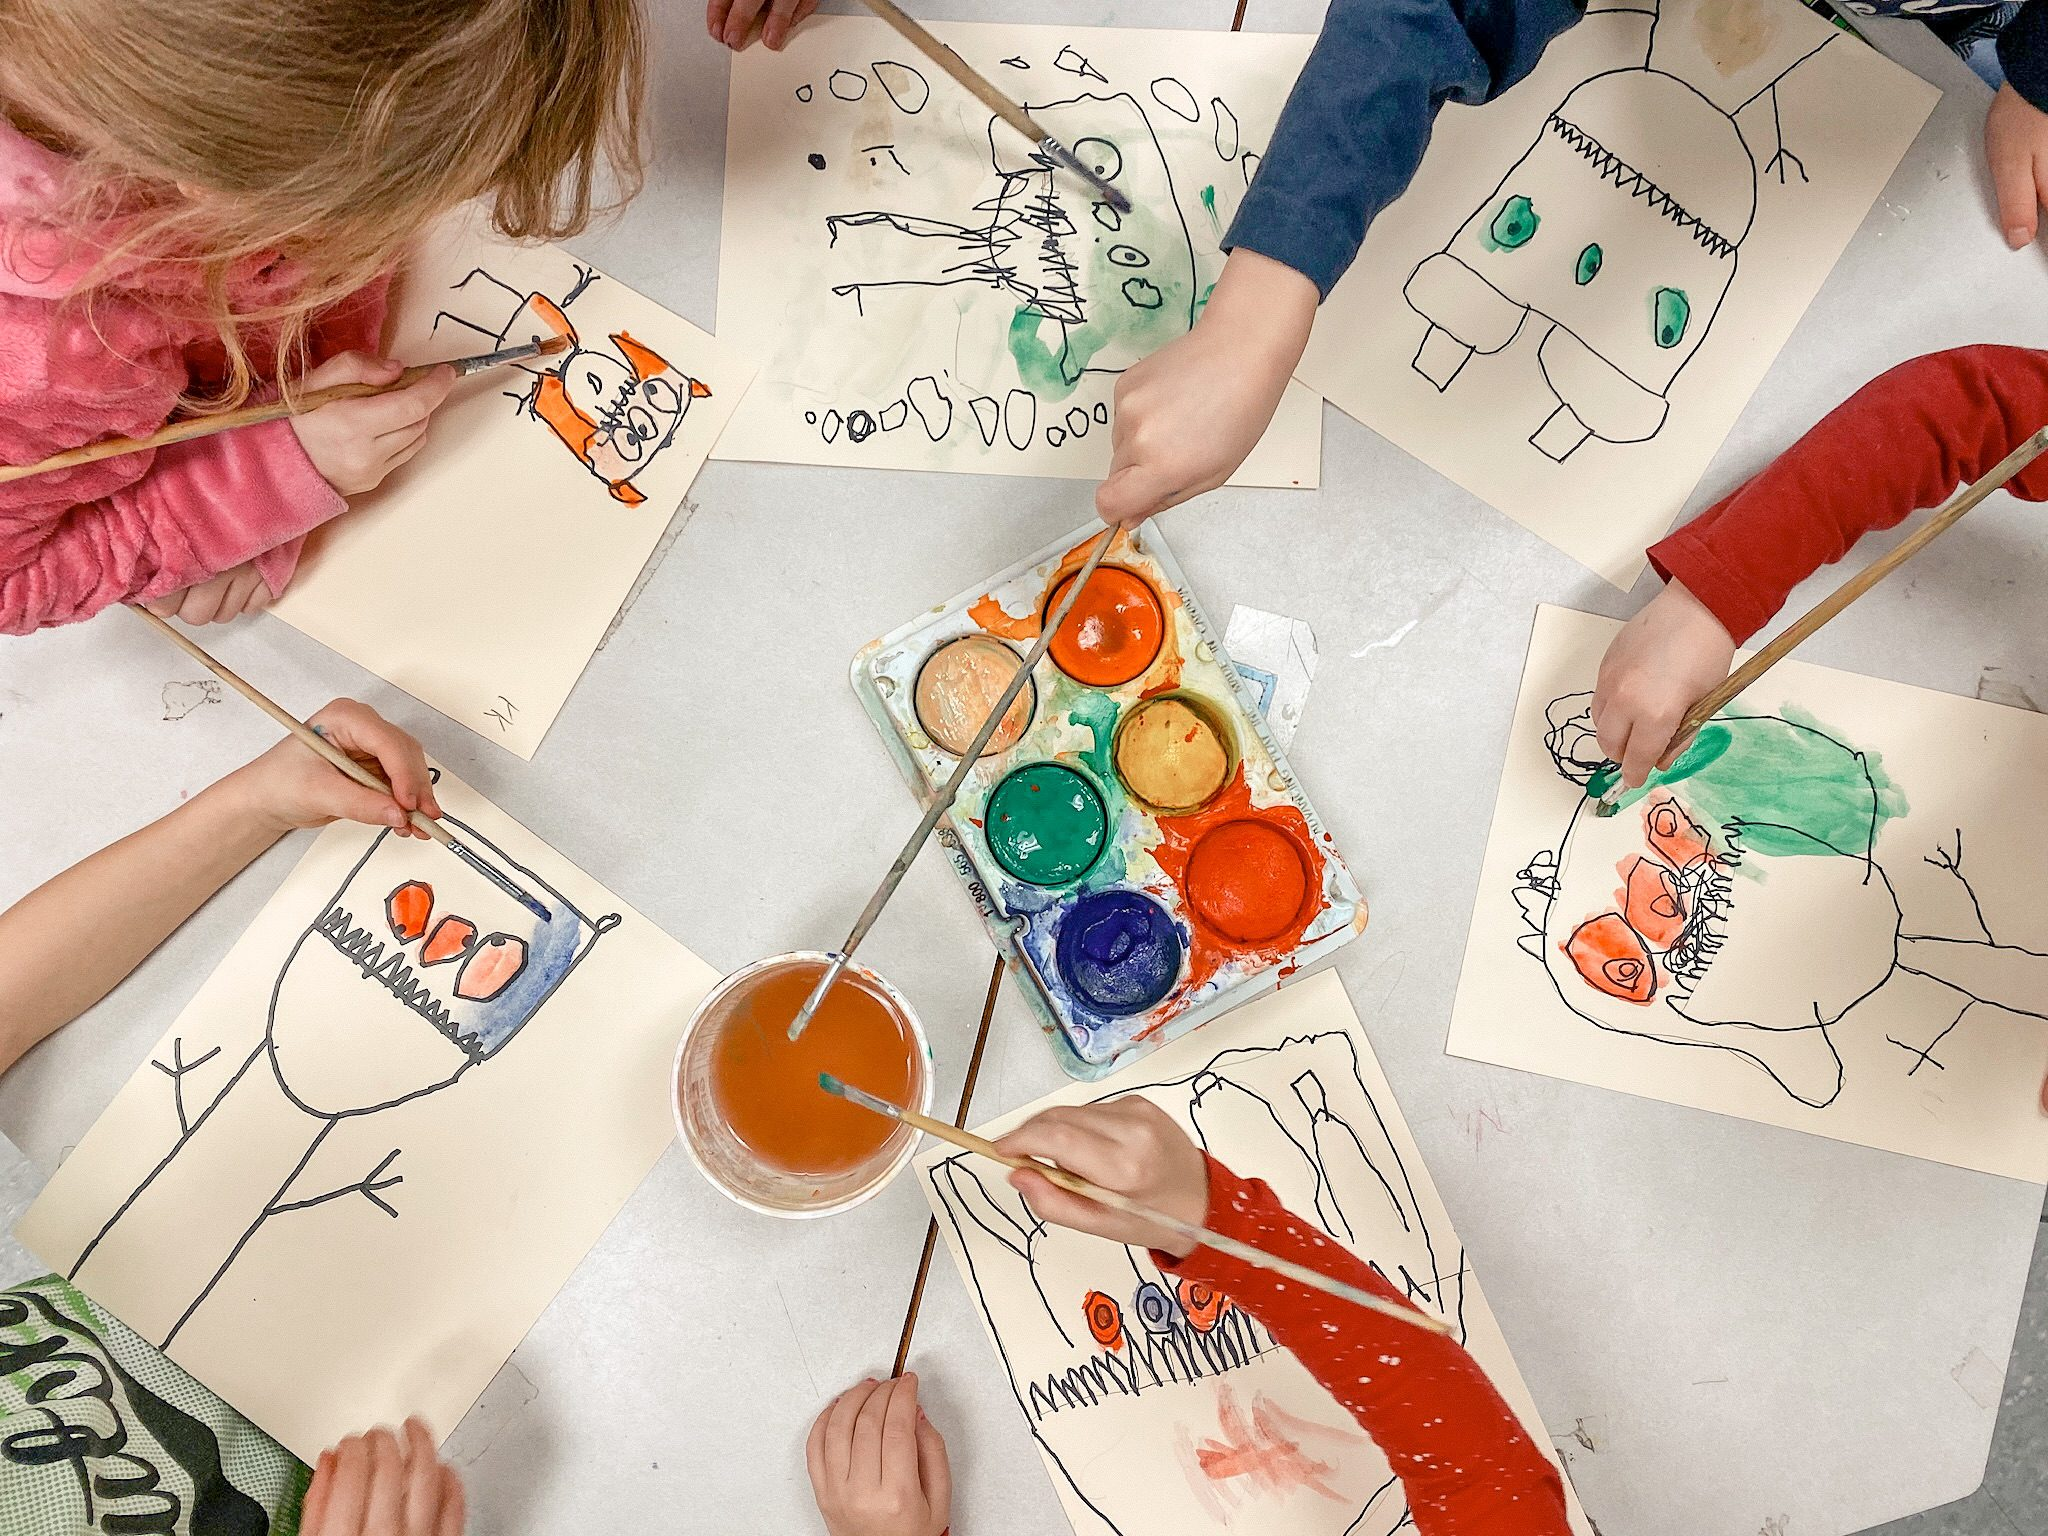 Kindergarten students doing an art activity. They are working on directed drawings.